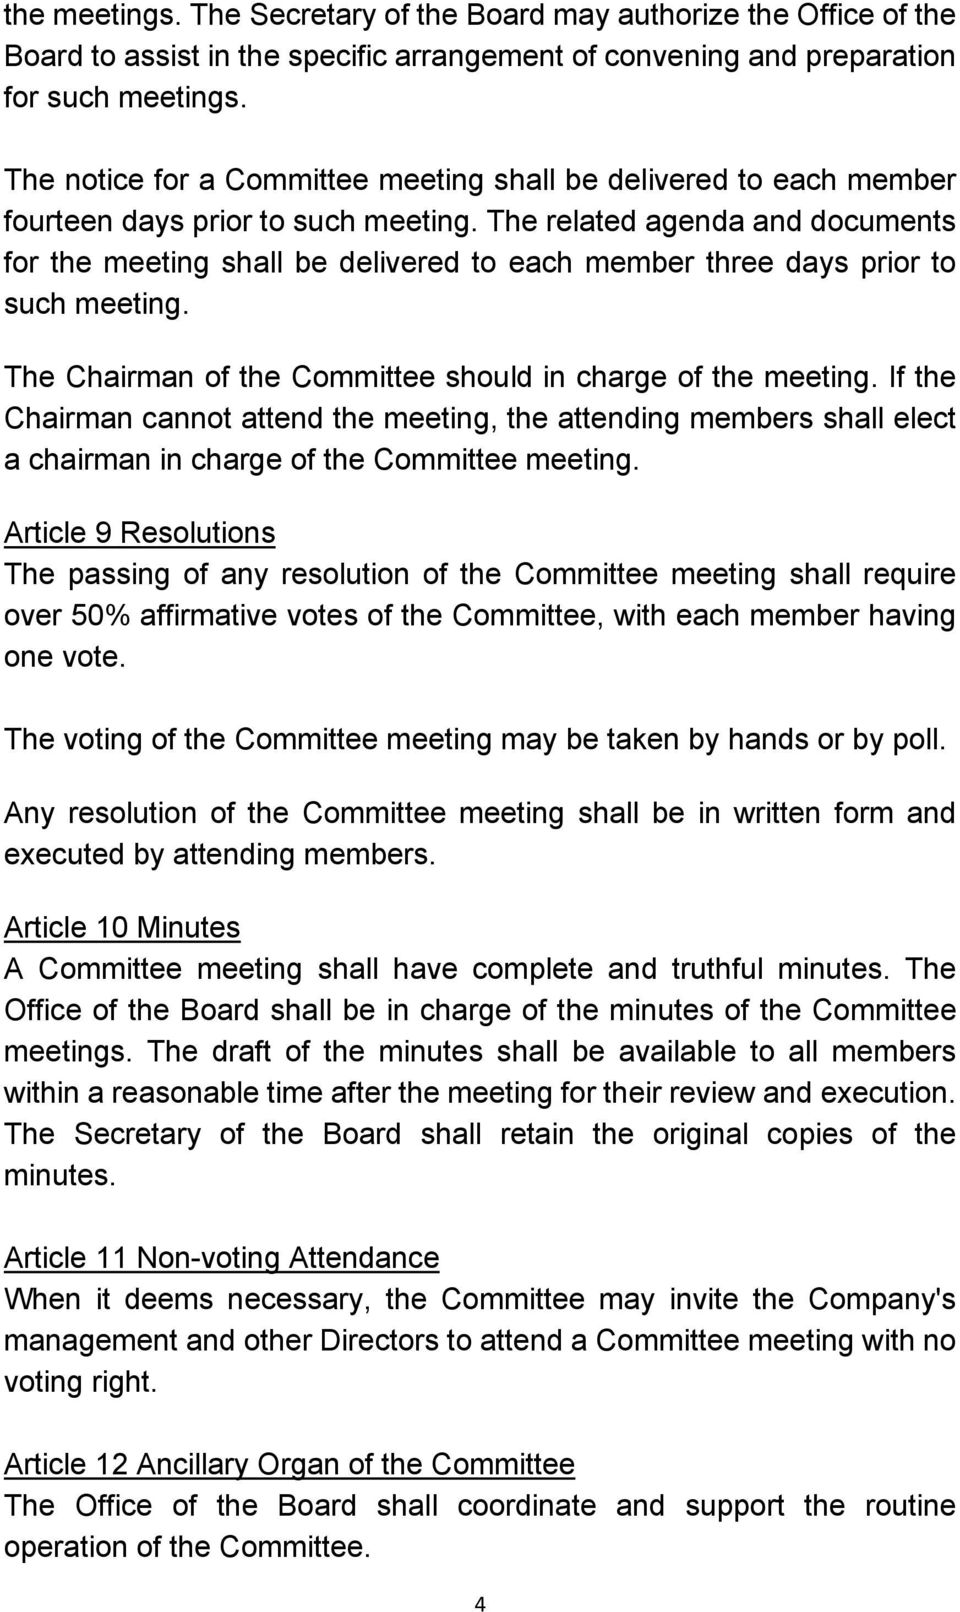 The related agenda and documents for the meeting shall be delivered to each member three days prior to such meeting. The Chairman of the Committee should in charge of the meeting.